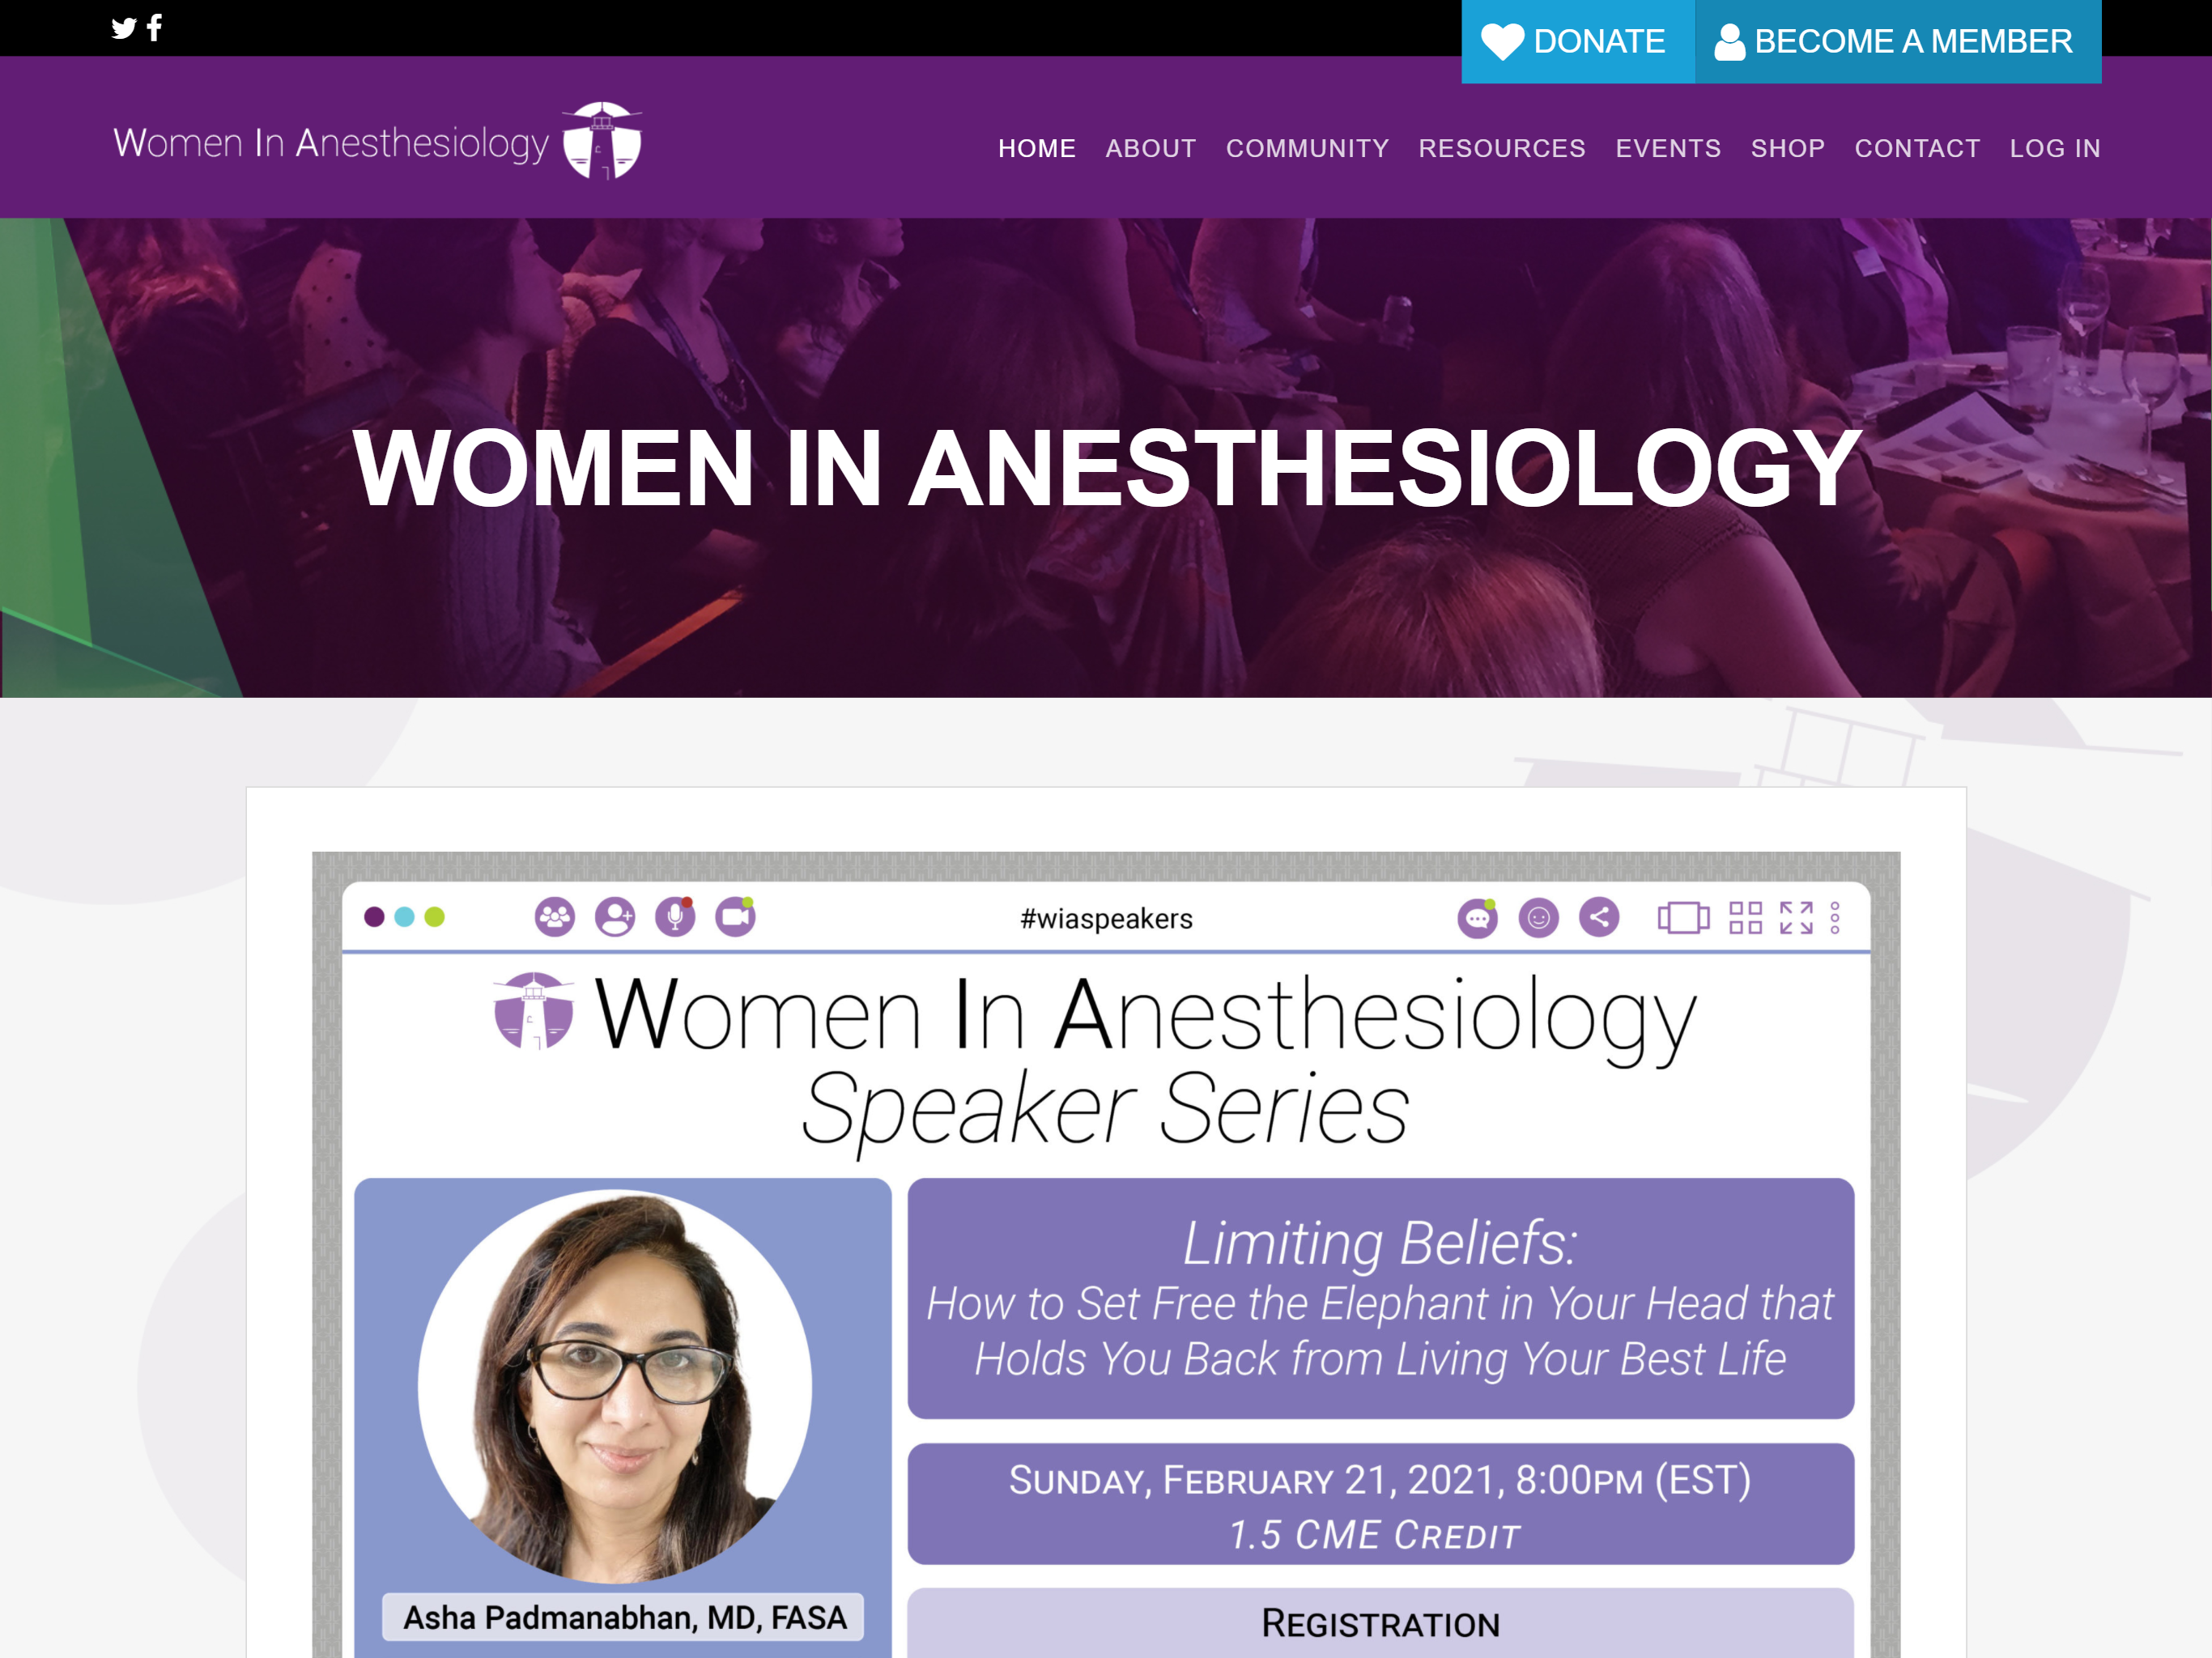 Sitio web de Women In Anesthesiology